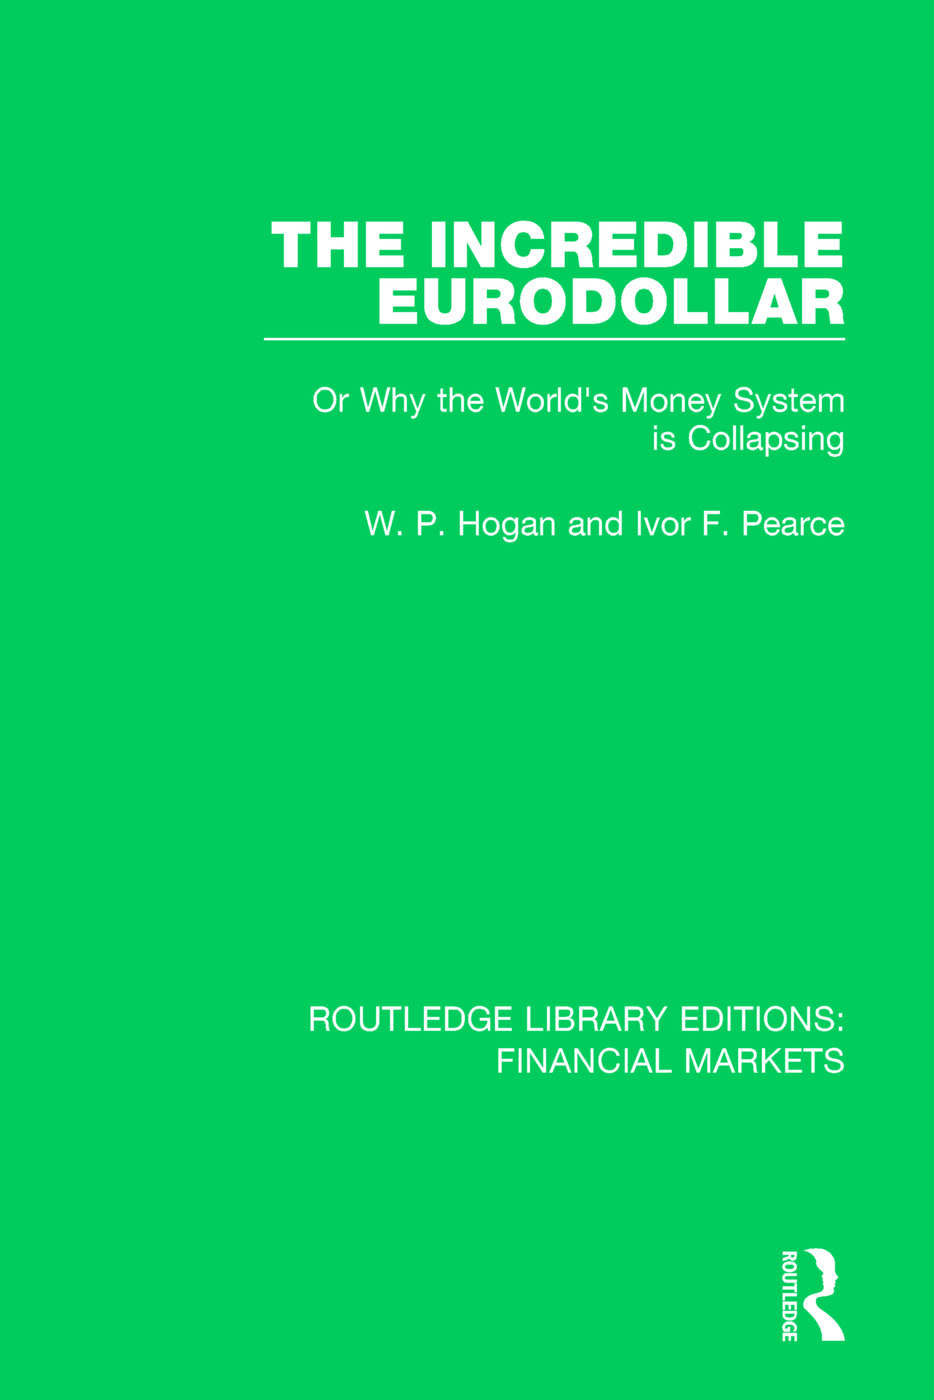 The Incredible Eurodollar: Or Why the World's Money System is Collapsing book cover